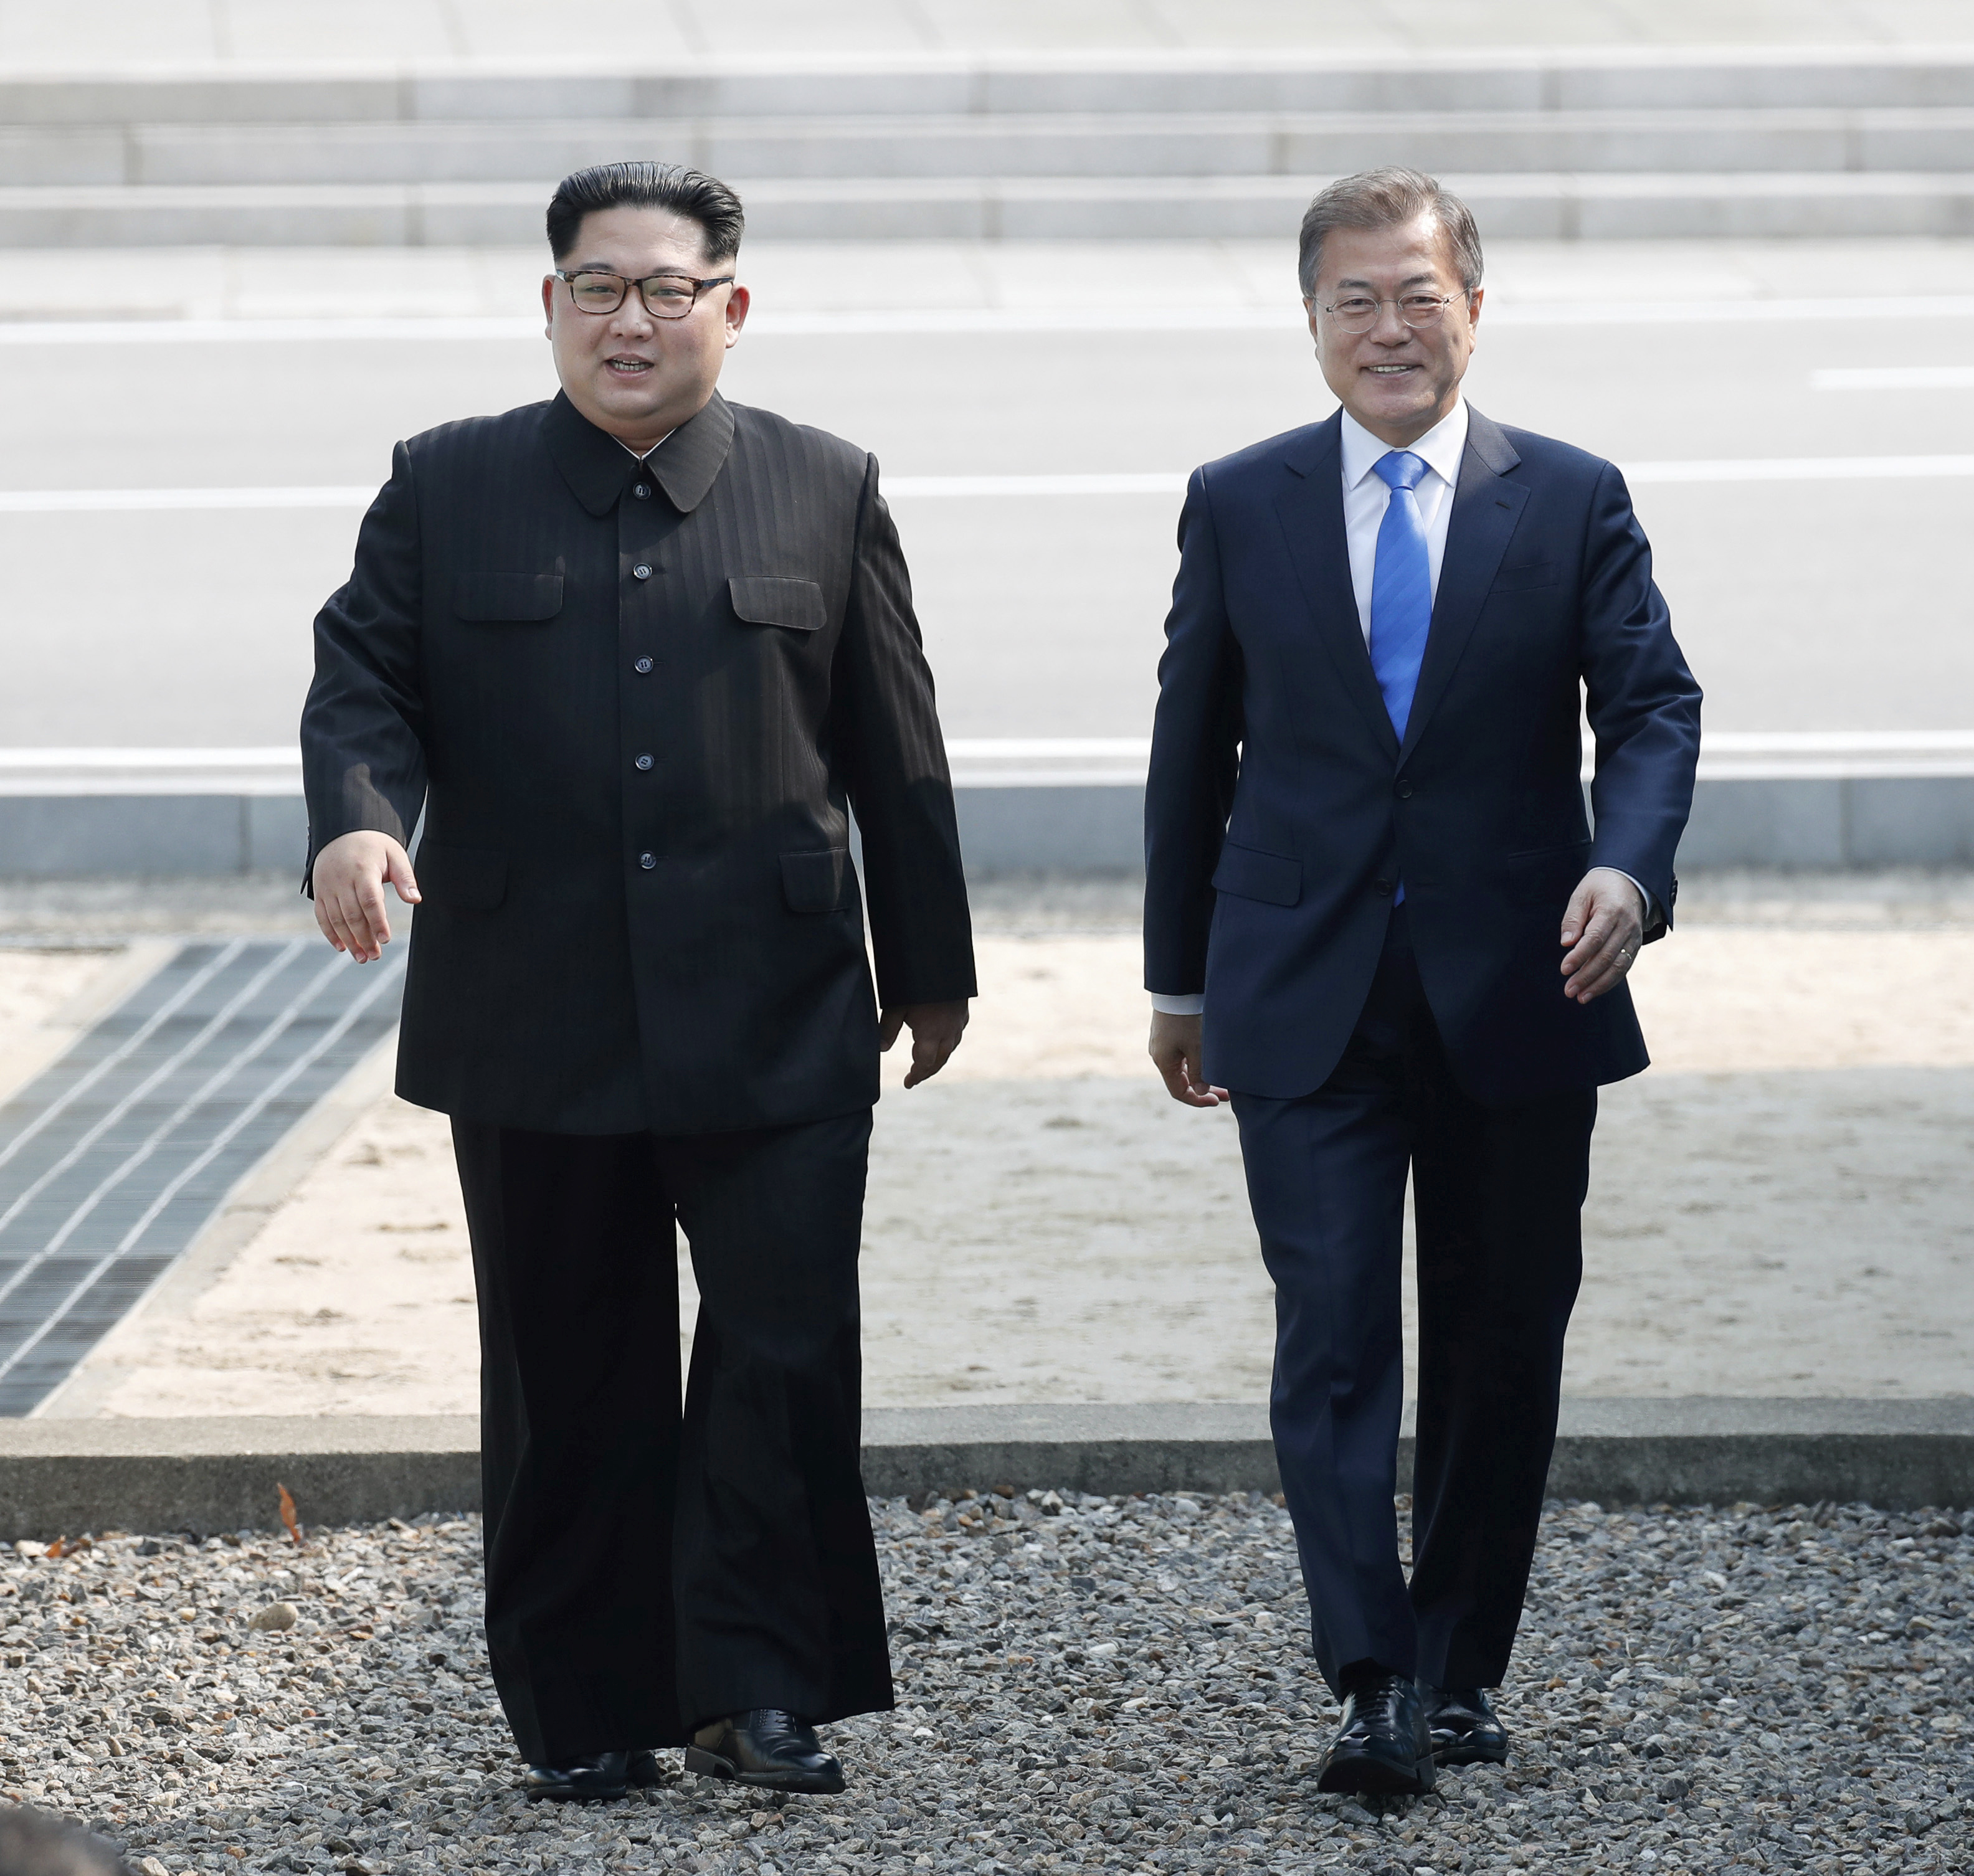 El dictador norcoreano Kim Jong-un y el presidente surcoreano Moon Jae-in camina en terreno surcoreano. (Korea Summit Press Pool via AP)